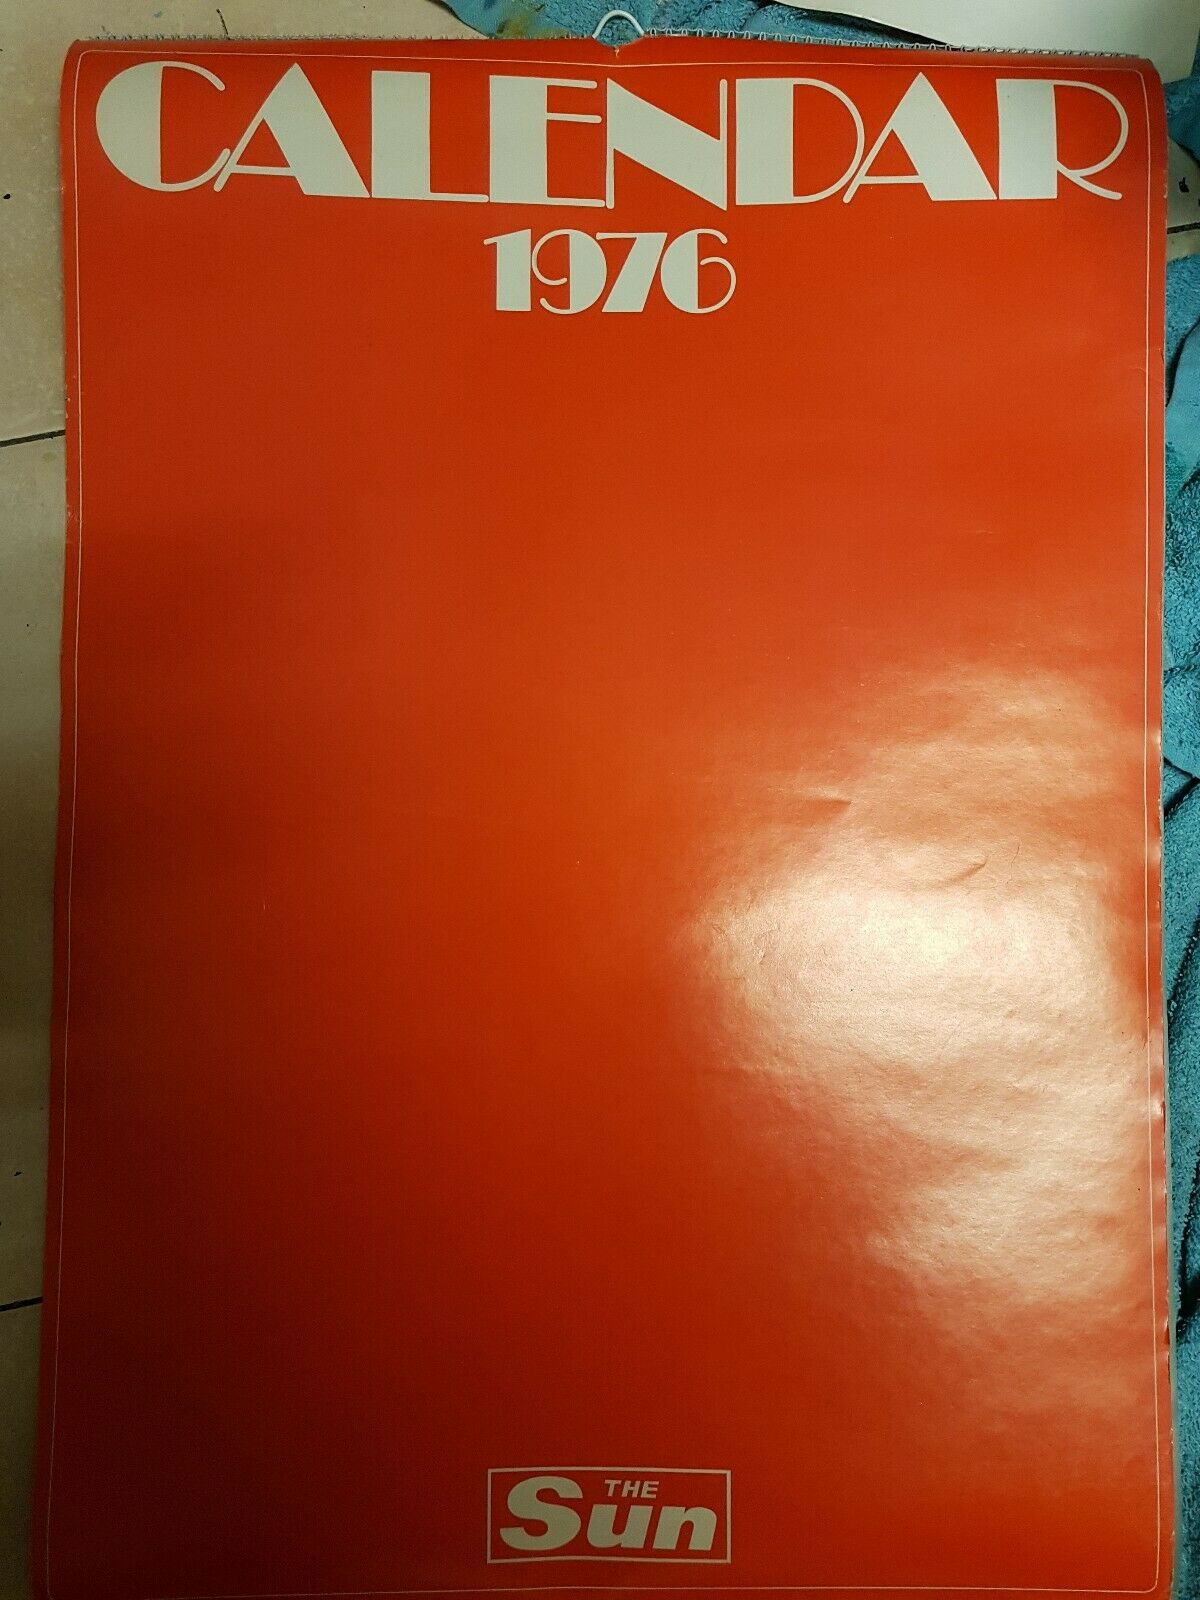 Vintage 1976 The Sun Page 3 Official Calendar ~ Mint Condition Within Sun Page 3 Calenders